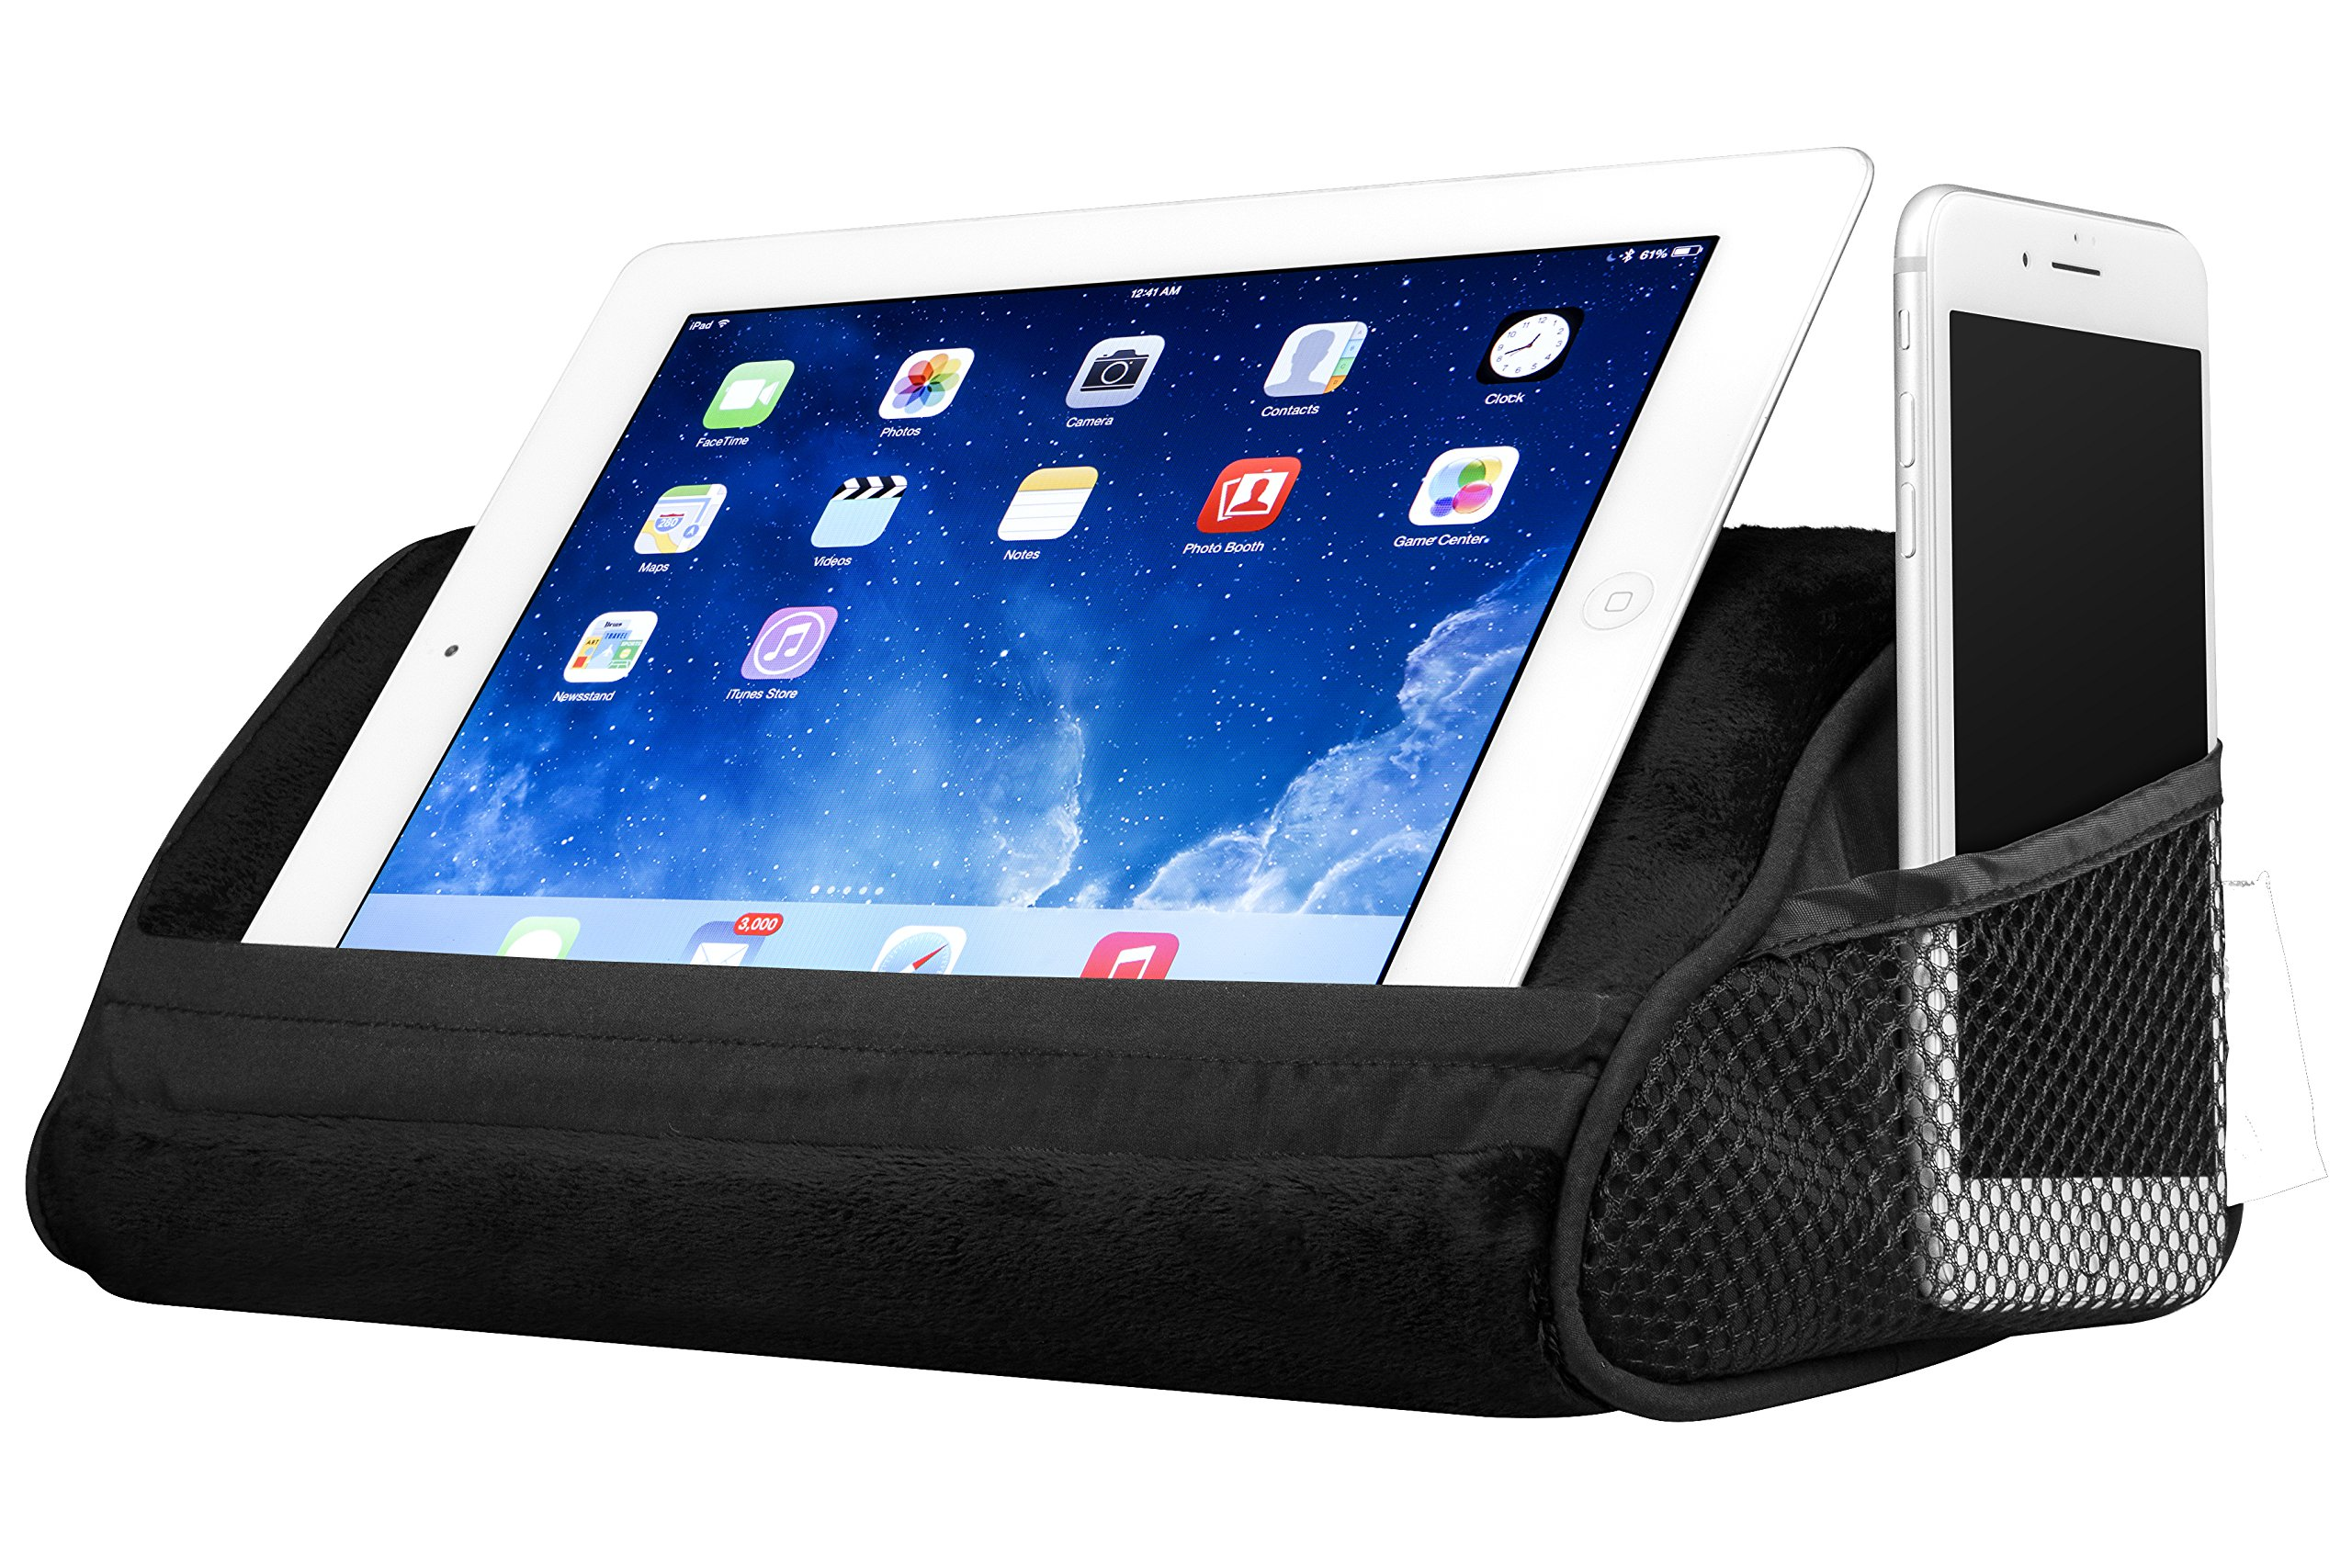 LapGear Travel Tablet Pillow, Tablet Stand - Black (Fits upto 10.5'' Tablet)